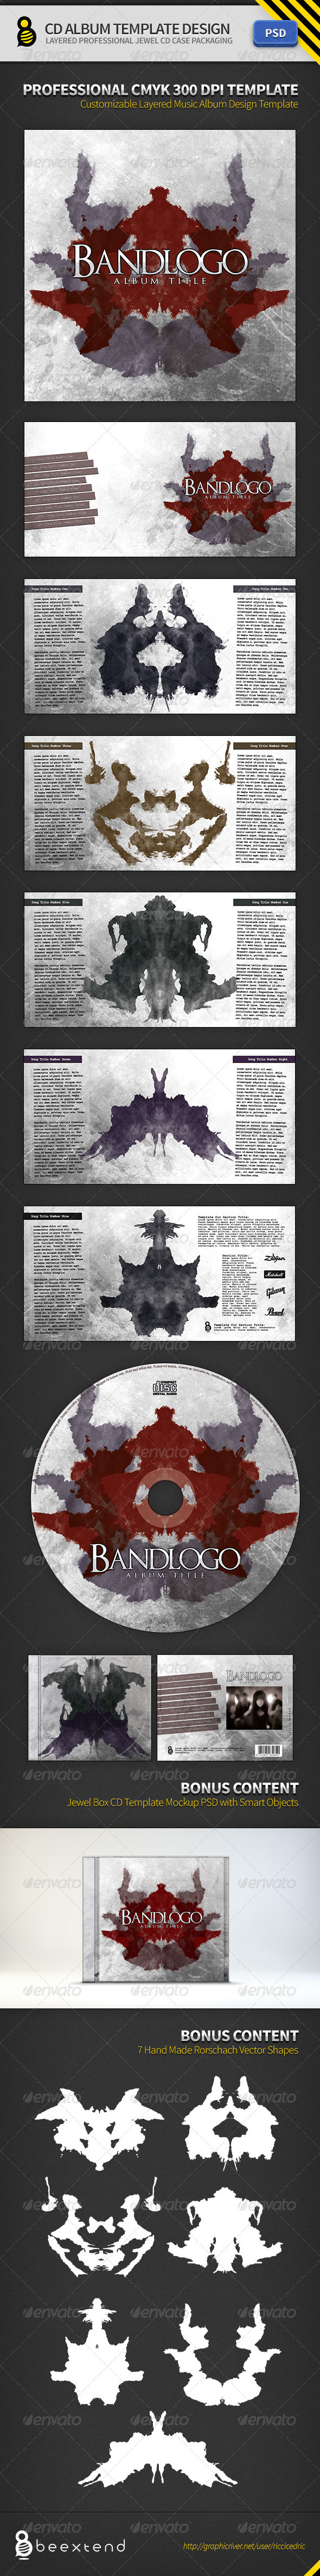 CD Album Template Design II - CD & DVD Artwork Print Templates